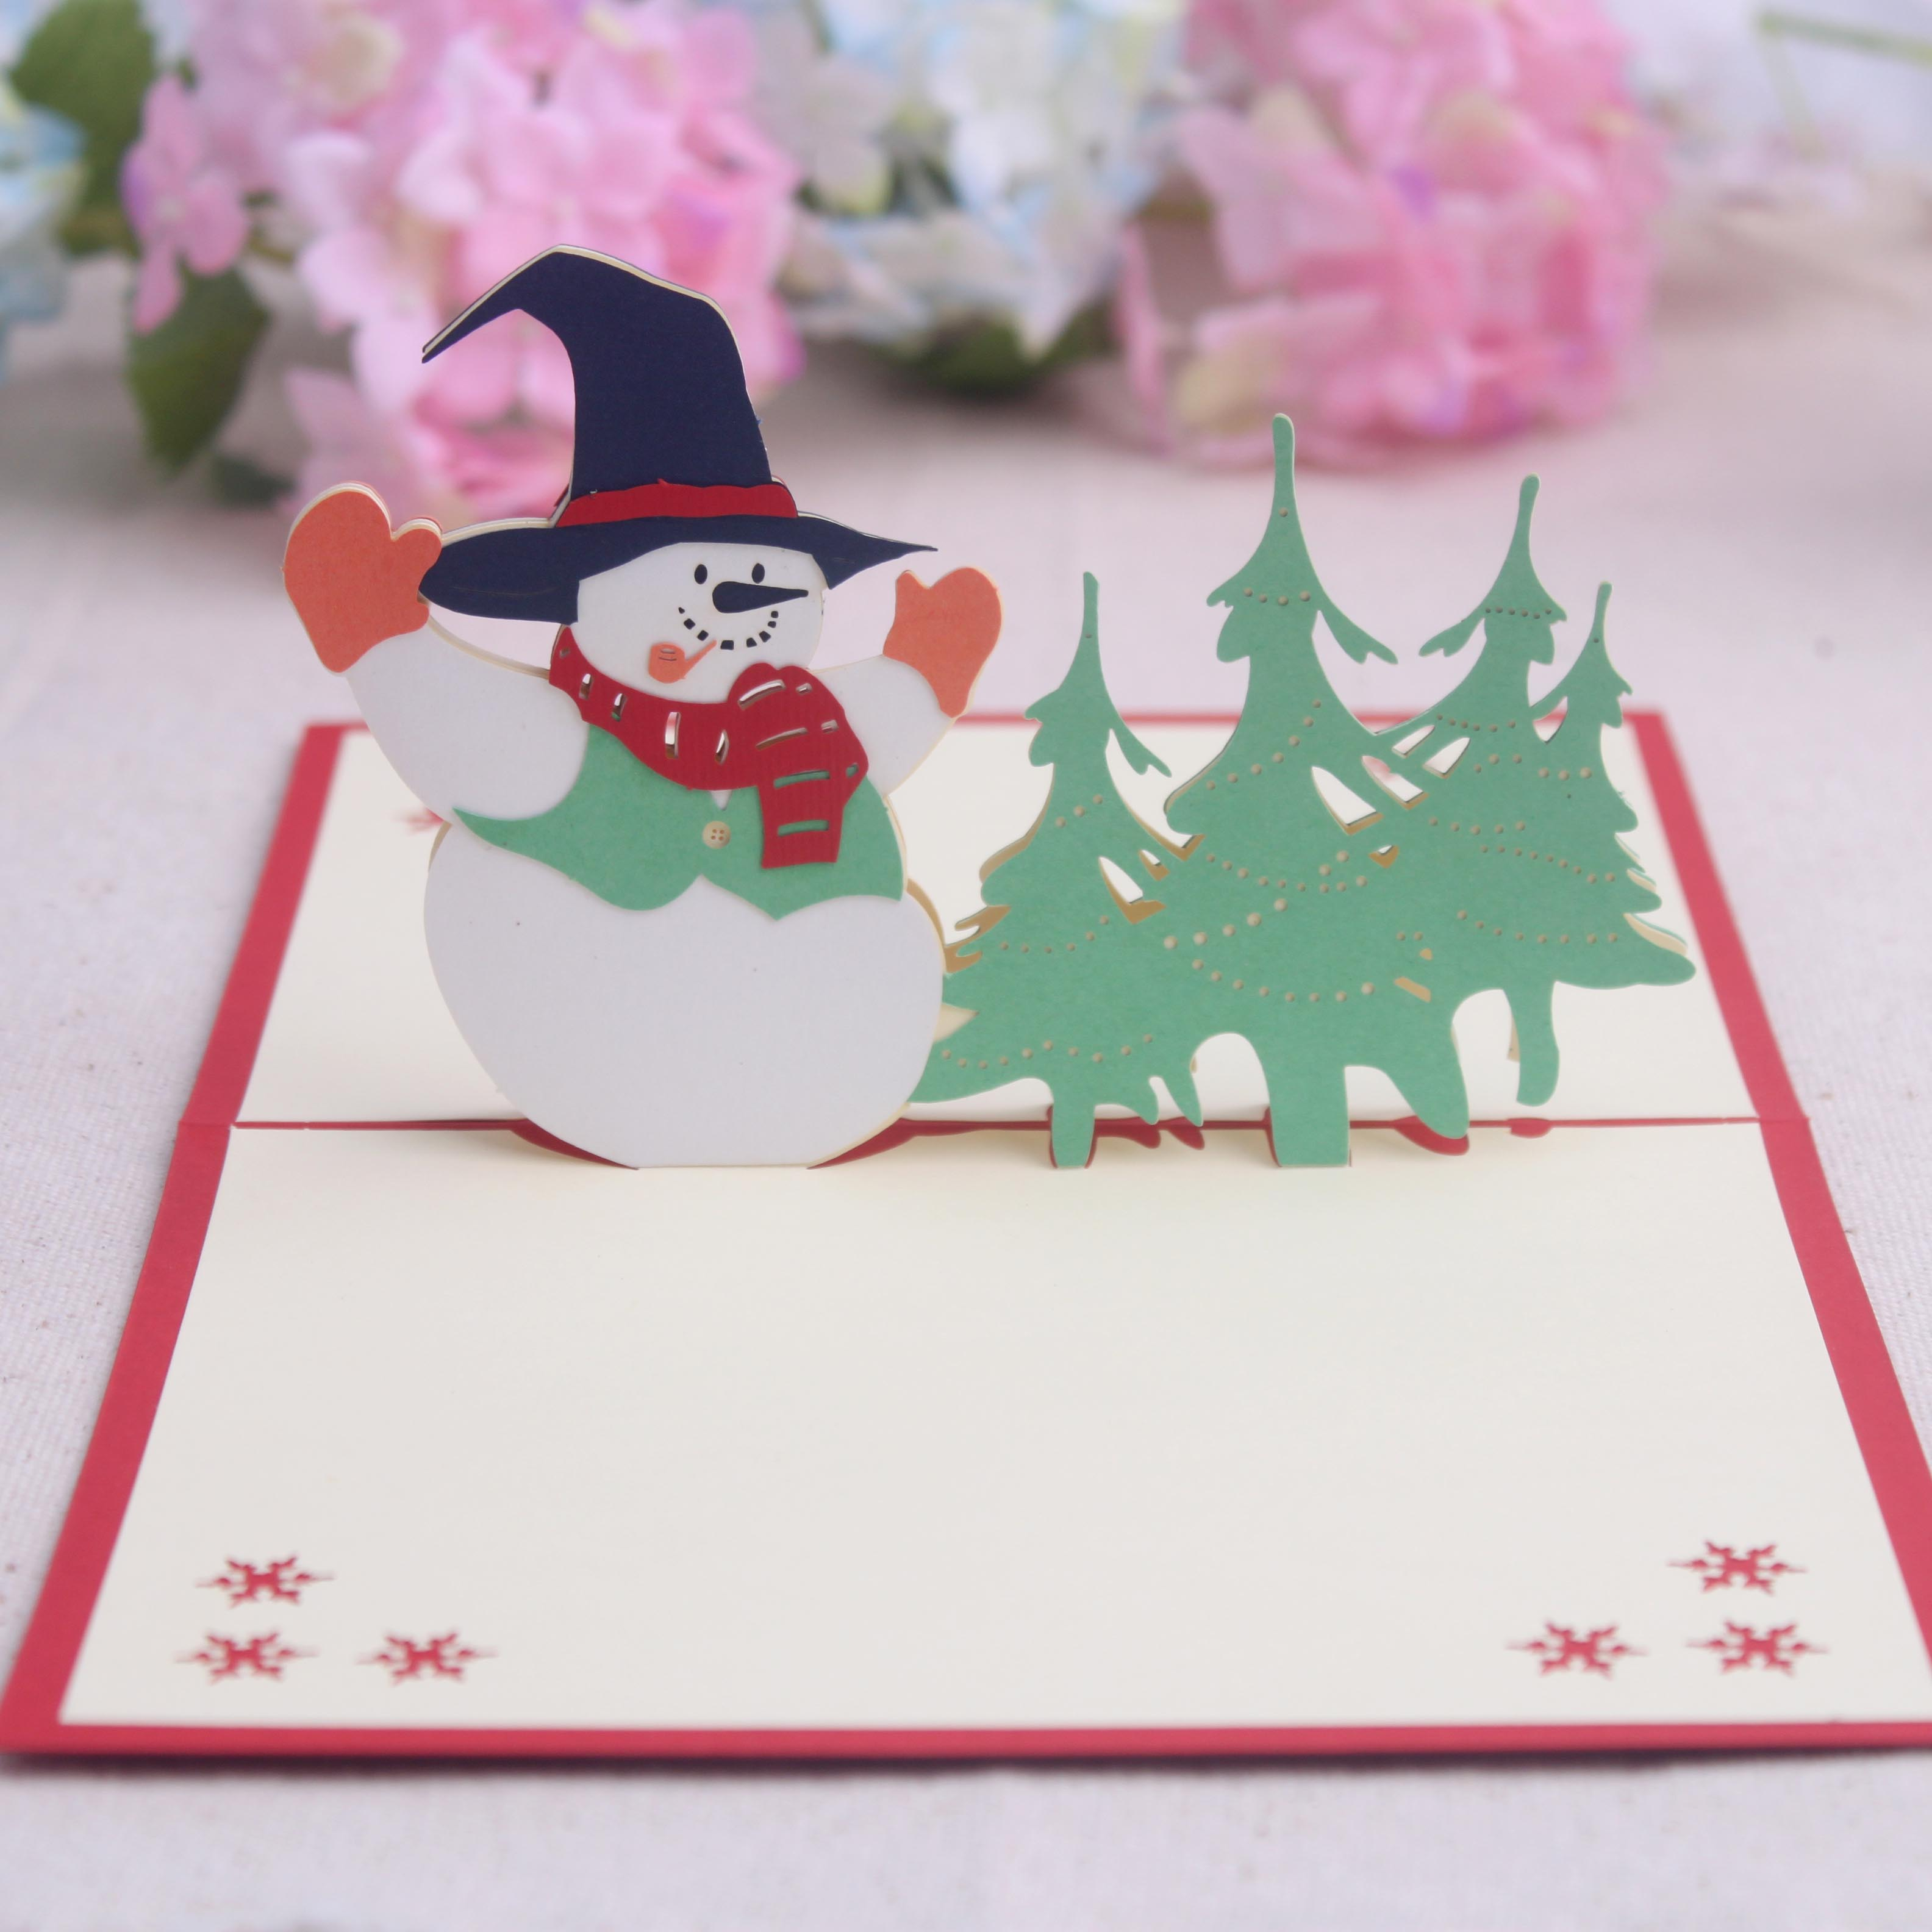 Buy commodities ni 3d dimensional creative handmade greeting cards recommended for you m4hsunfo